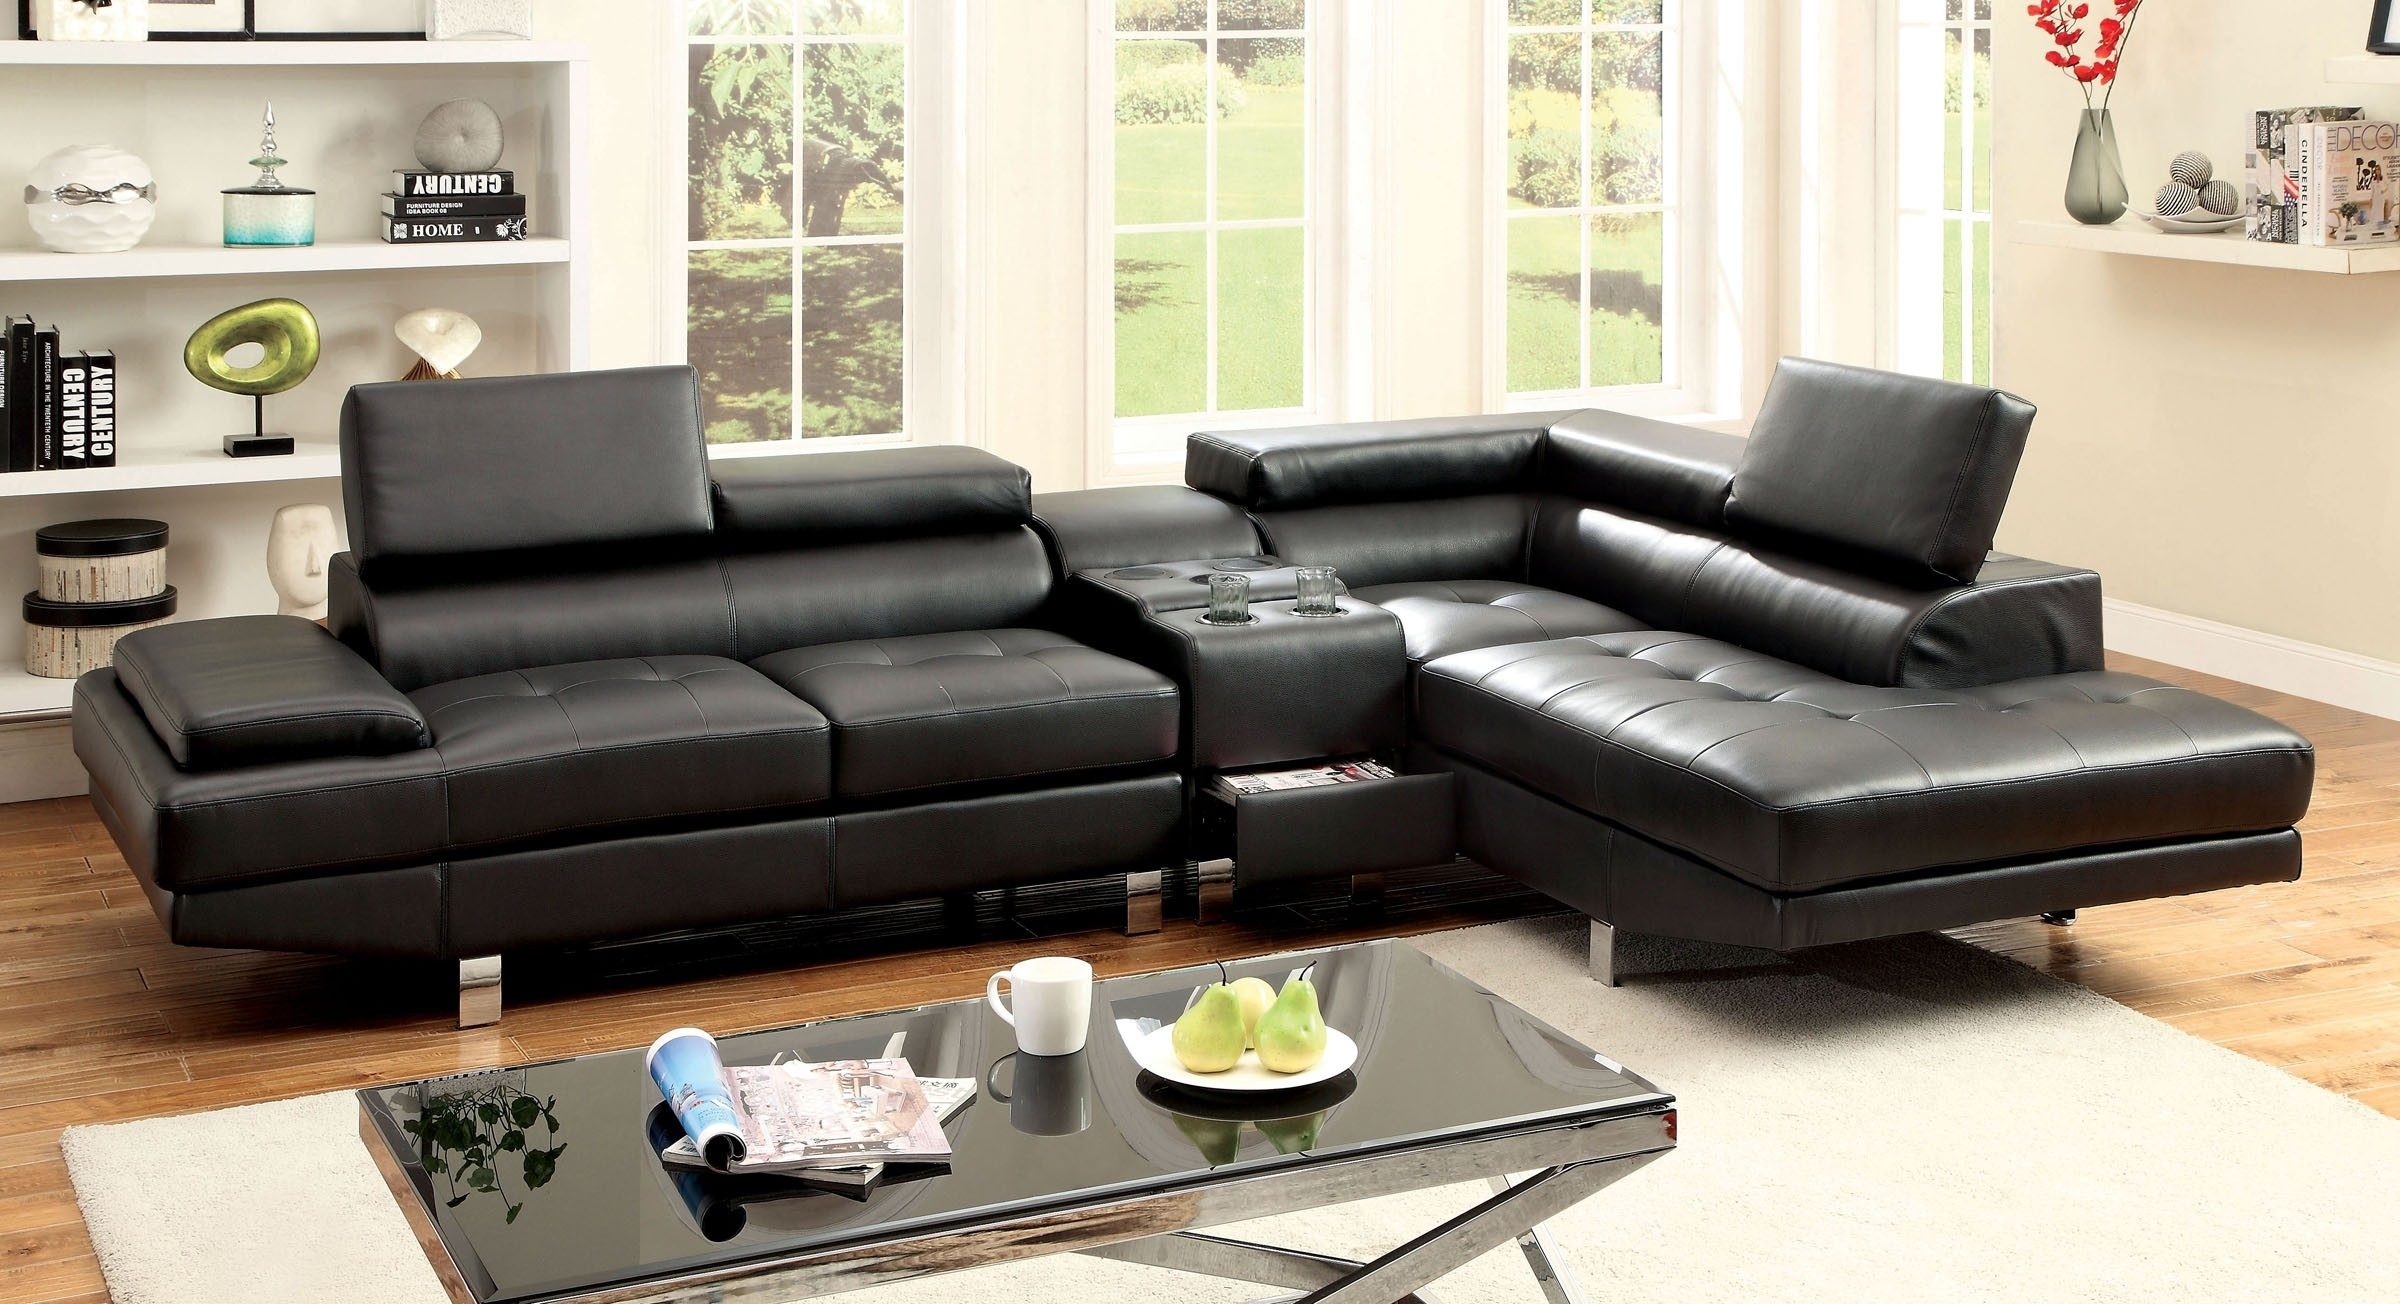 Sectional Sofa W/ Speaker Console (Cm6833Bk ) | Bb's Furniture Store inside Sectional Sofas With Consoles (Image 8 of 10)